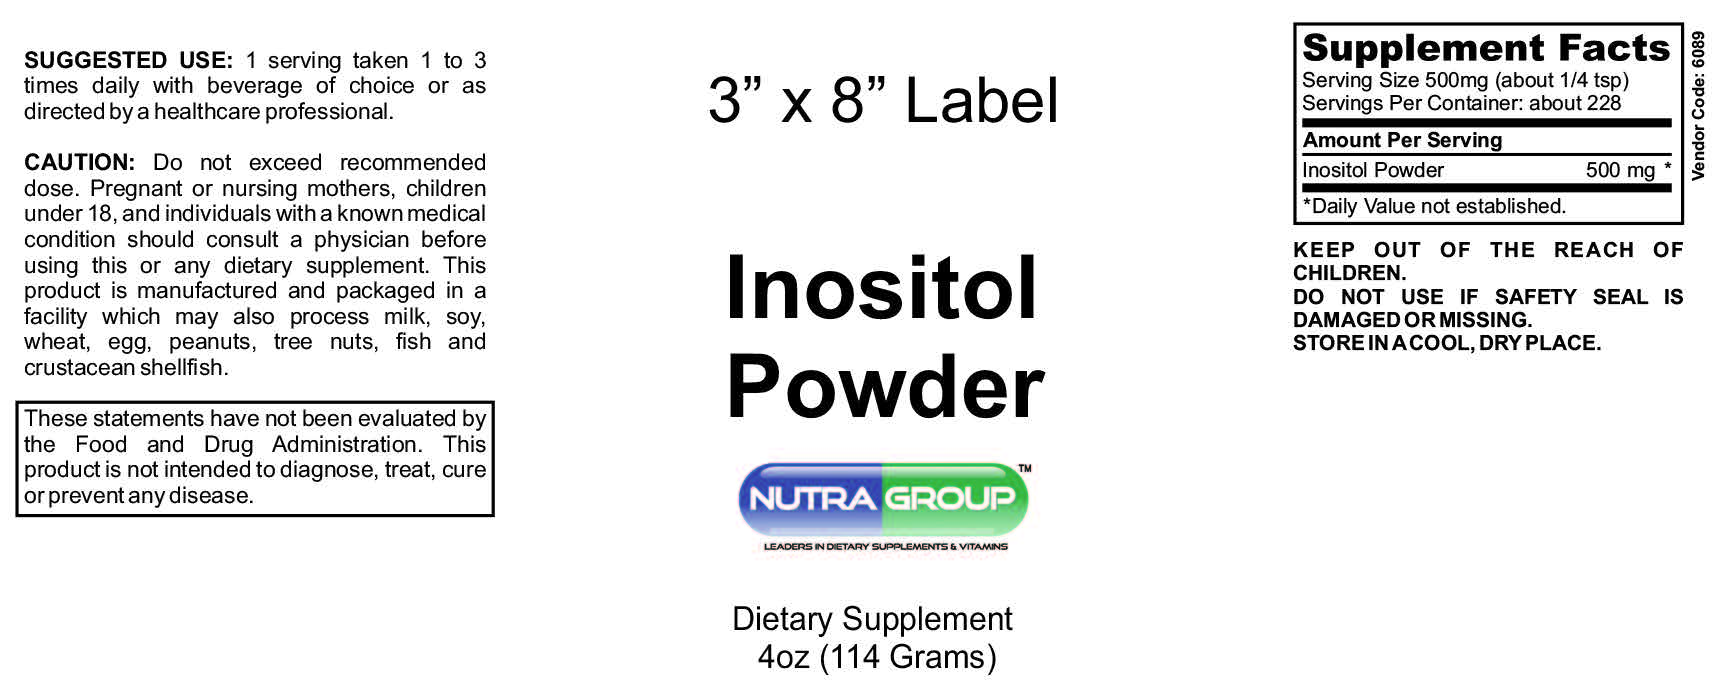 Private label Inositol Powder